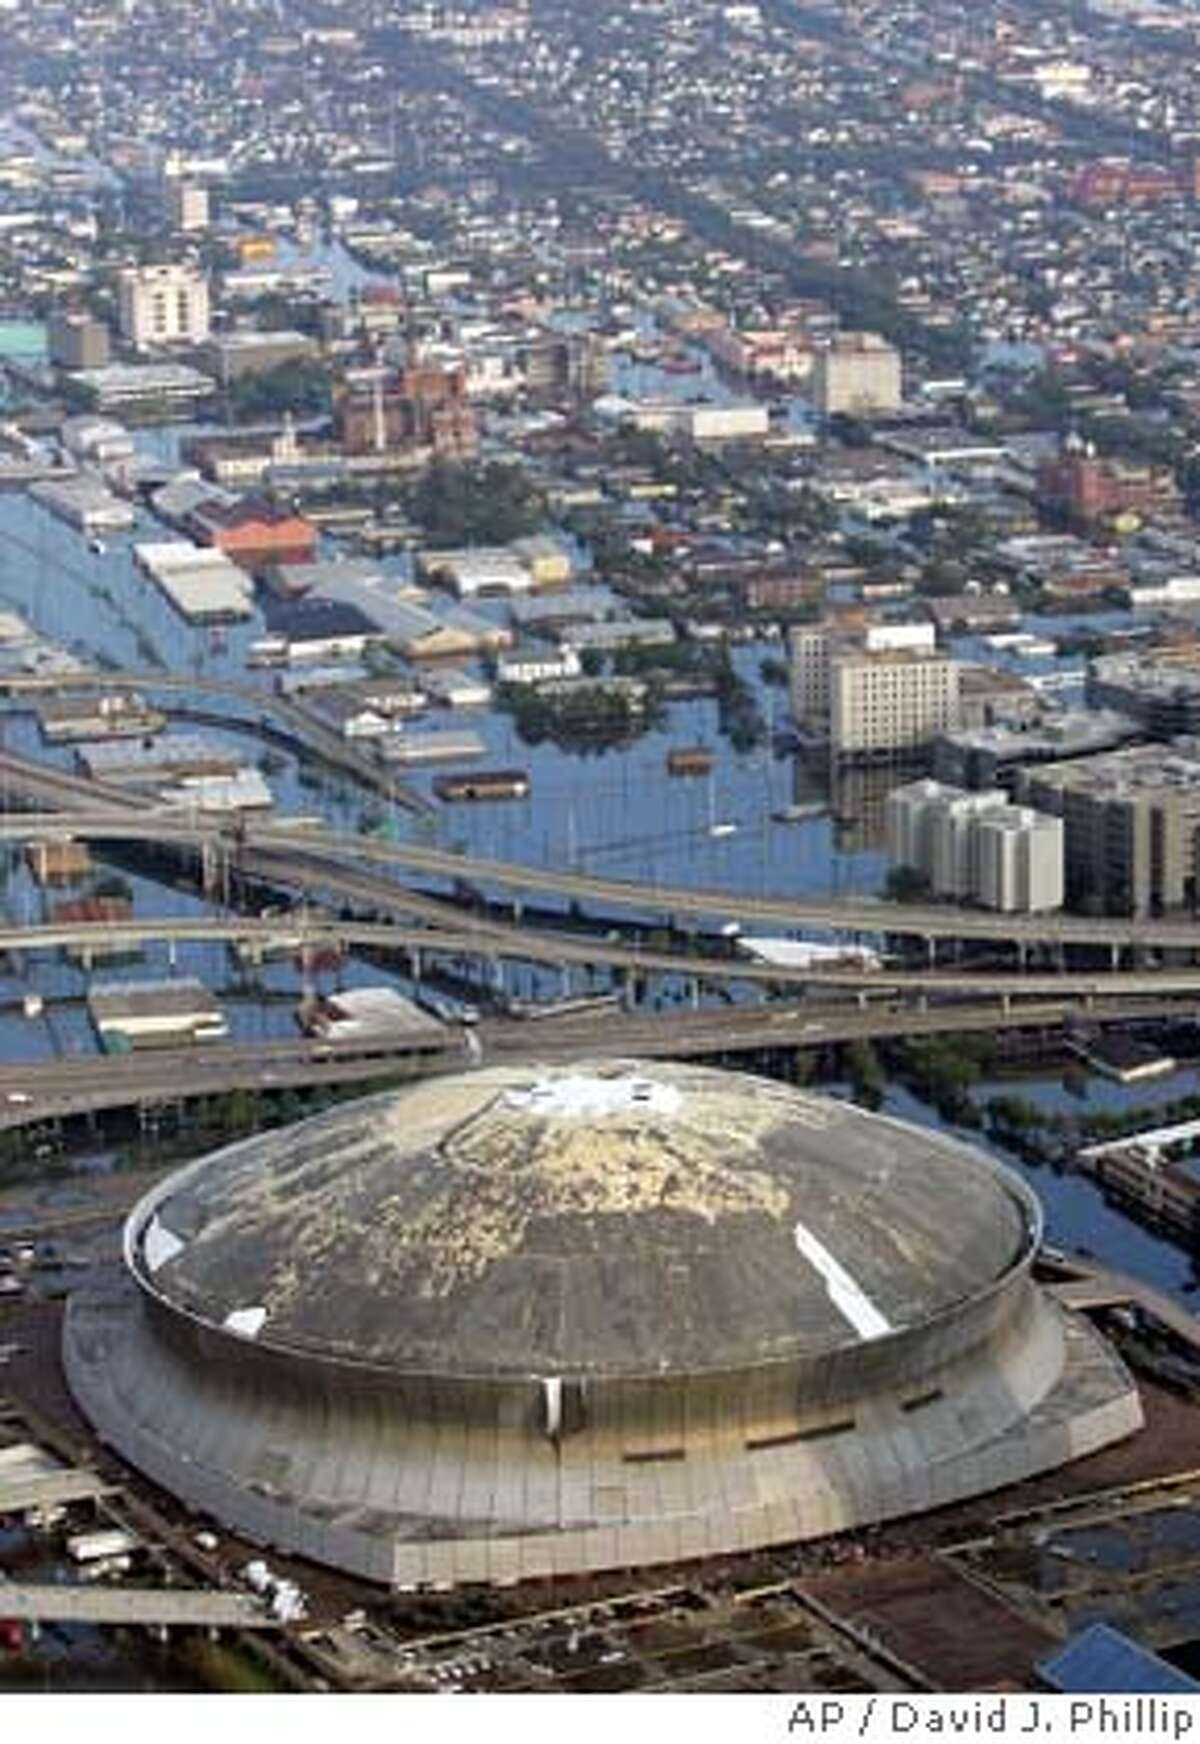 The Louisiana Superdome, which was damaged by Hurricane Katrina, sits surrounded by floodwaters Tuesday, Aug. 30, 2005 in New Orleans. (AP Photo/David J. Phillip)